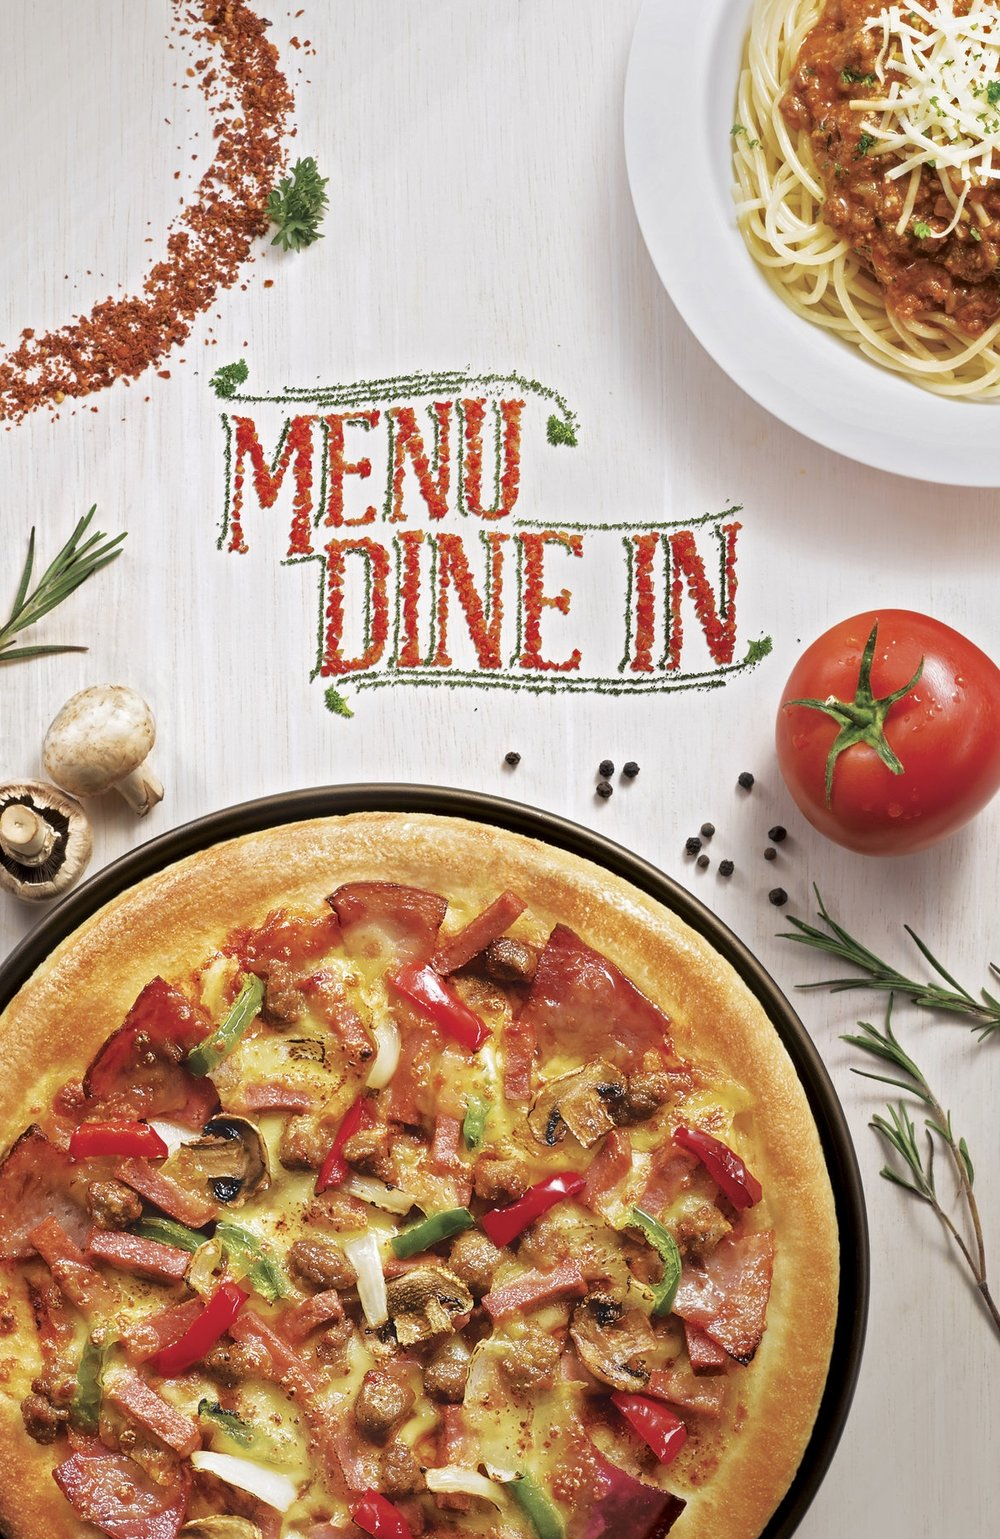 Pizza Hut-Cover Menu Dine In EDIT.jpg